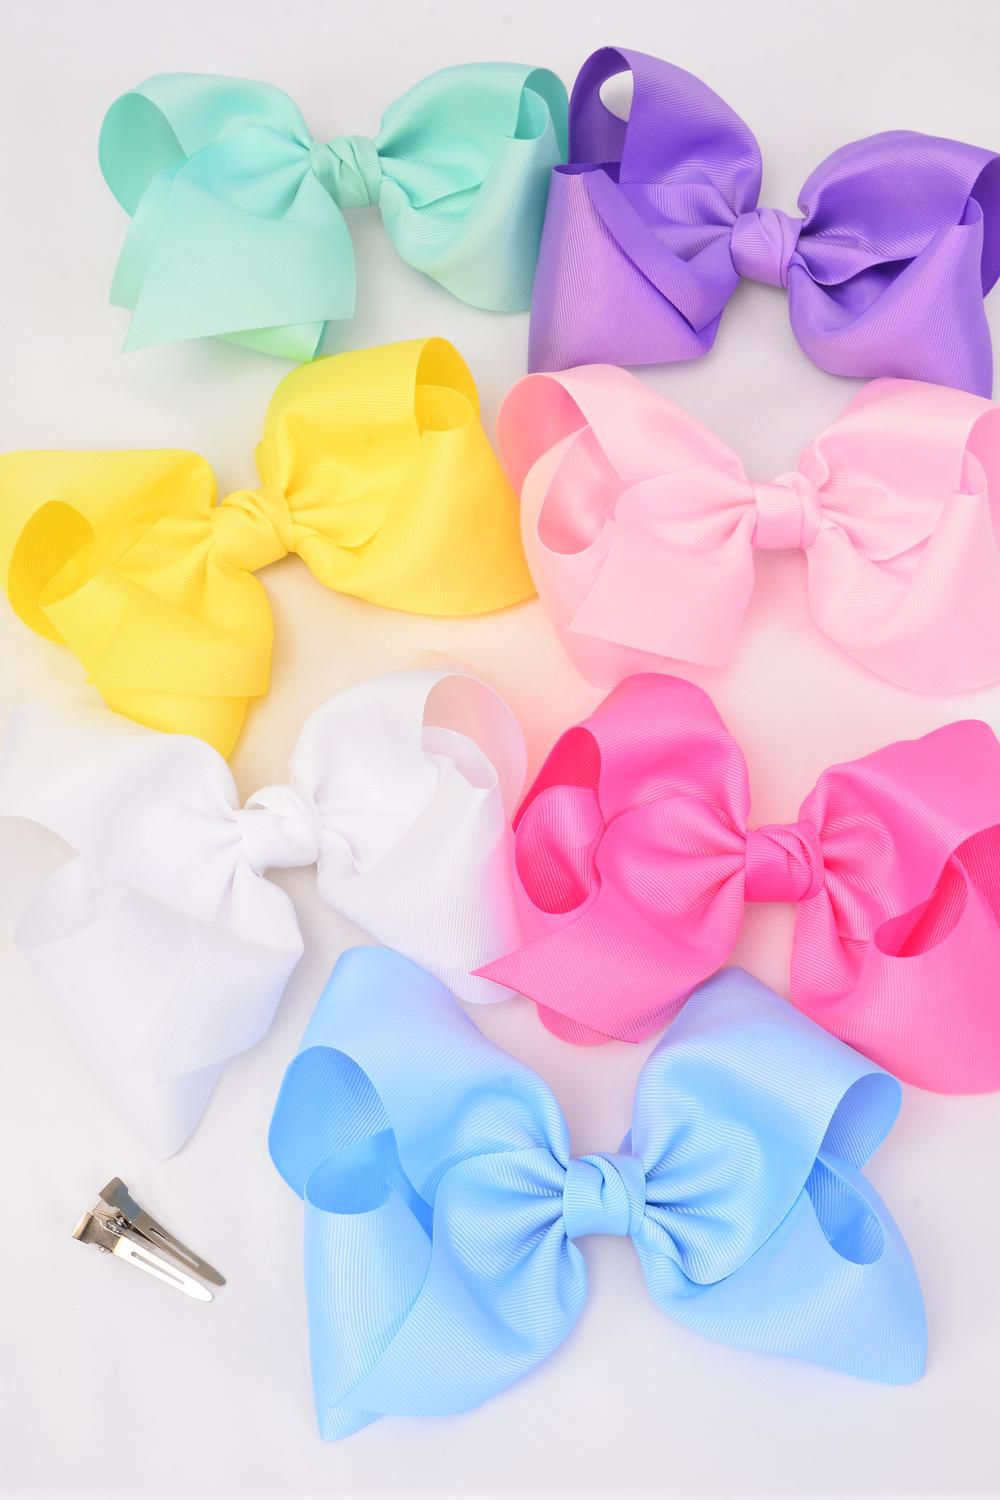 hair bow cheer type bow pastel alligator clip grosgrain. Black Bedroom Furniture Sets. Home Design Ideas